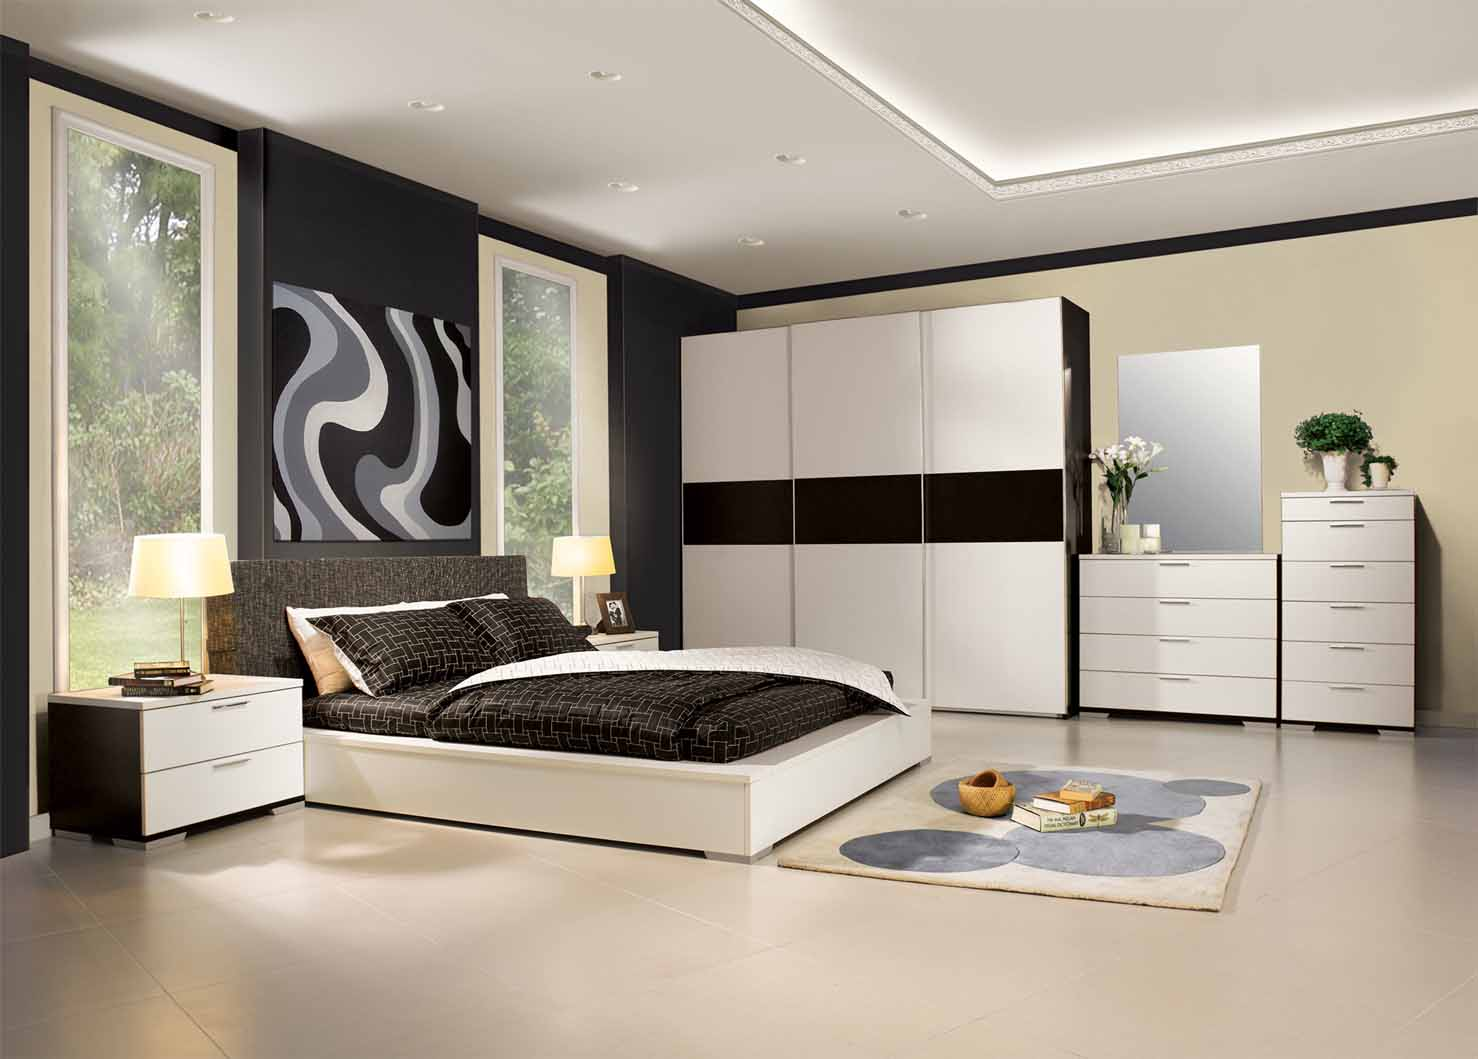 Modern bedroom decor fouadtalal for 3 bedroom design ideas